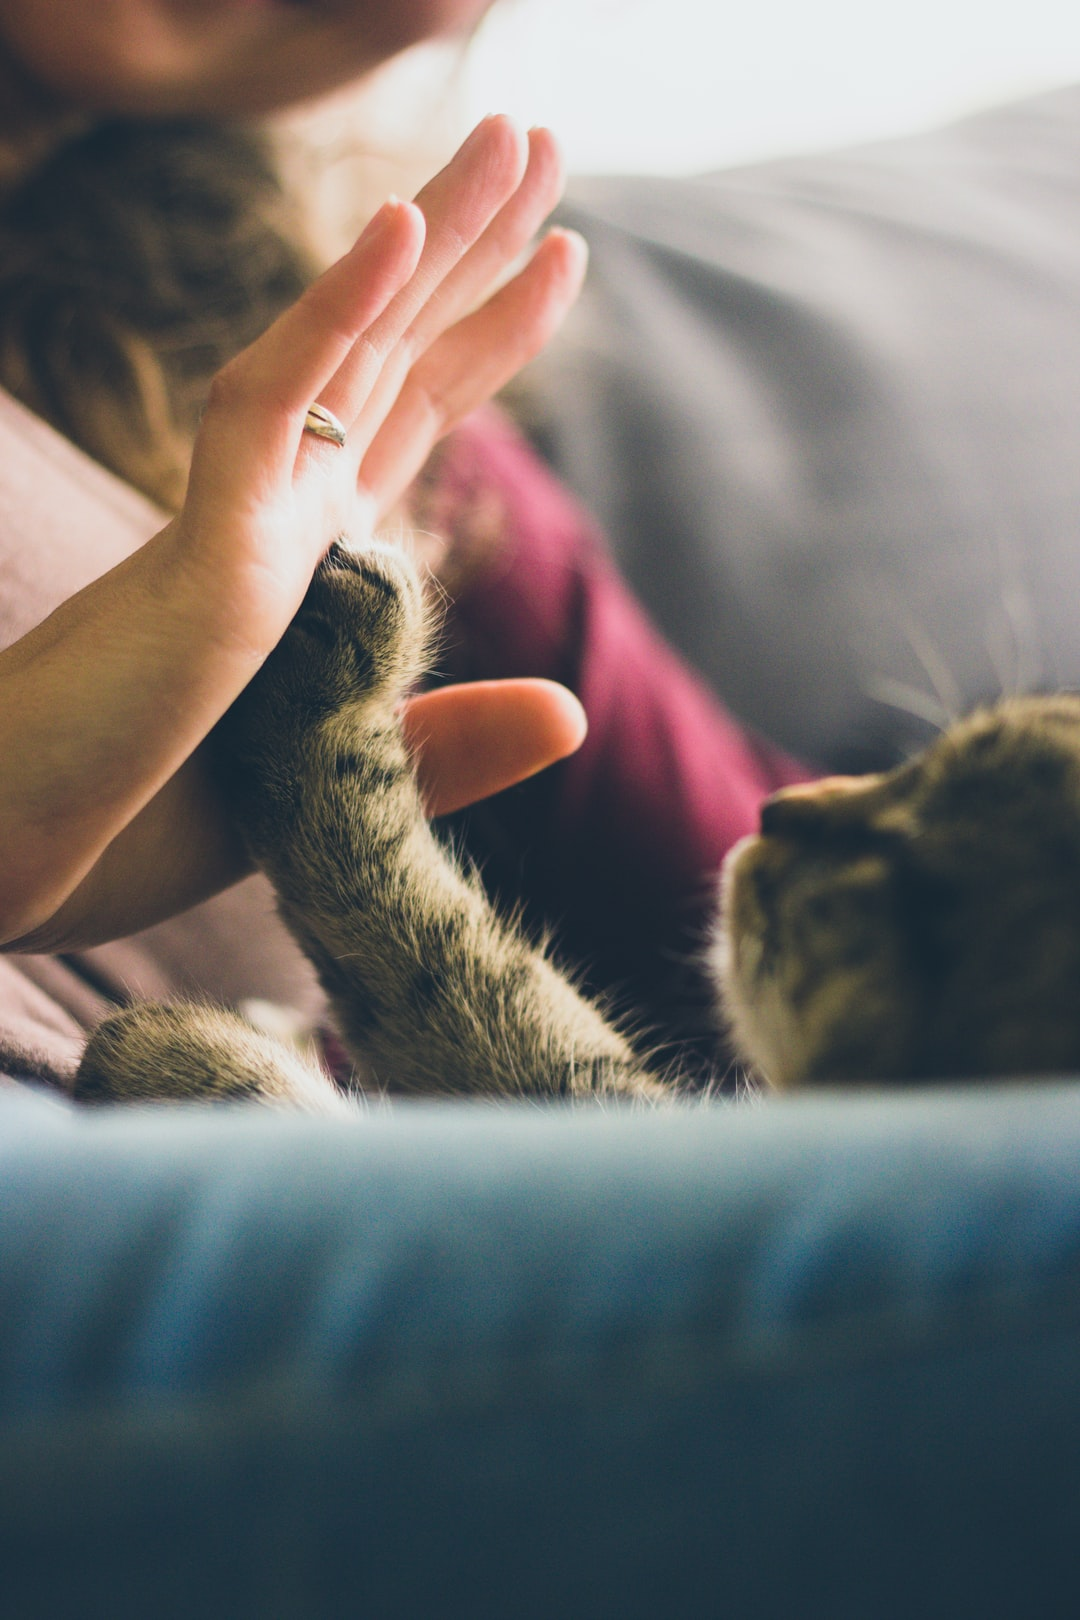 A simple moment as each week-end when i'm home with my wife and my little cat.